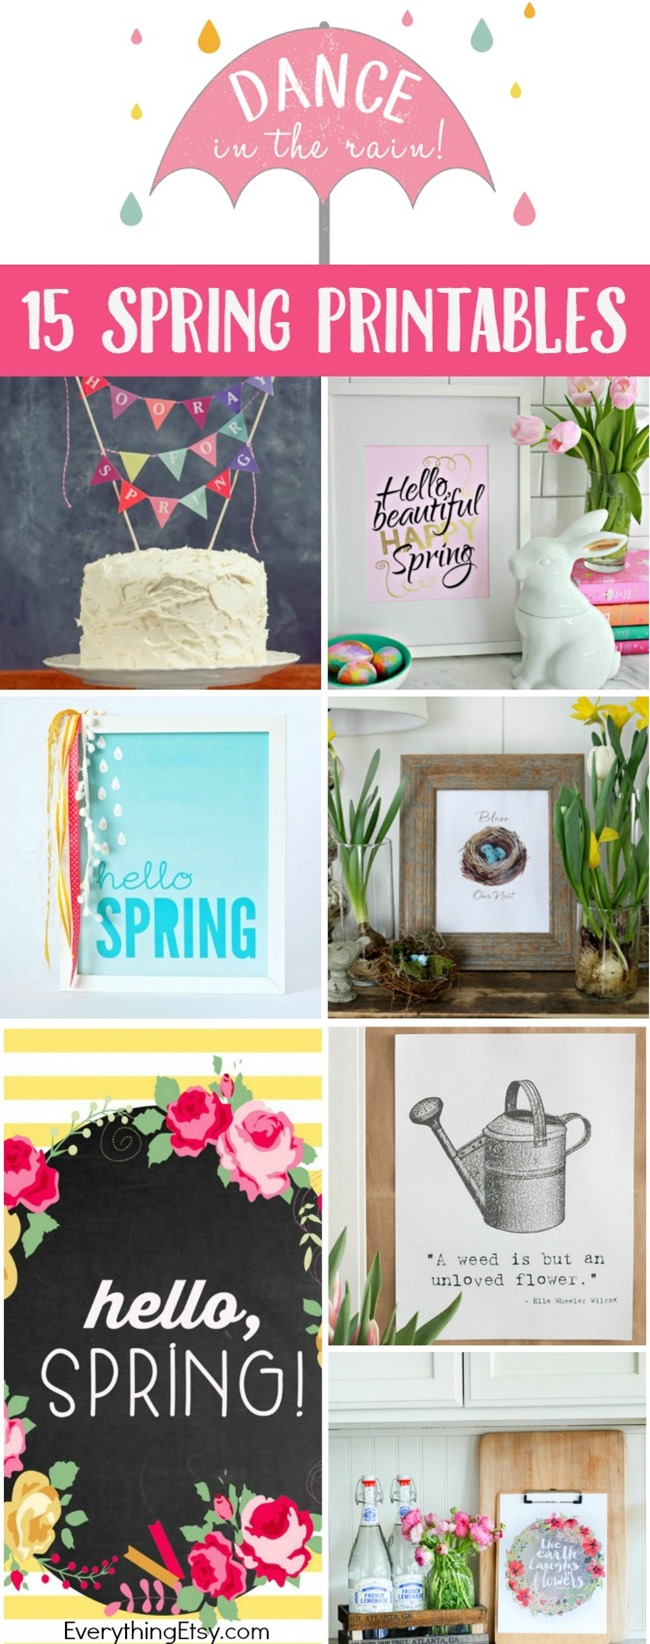 It's just an image of Comprehensive Free Printables for Home Decor